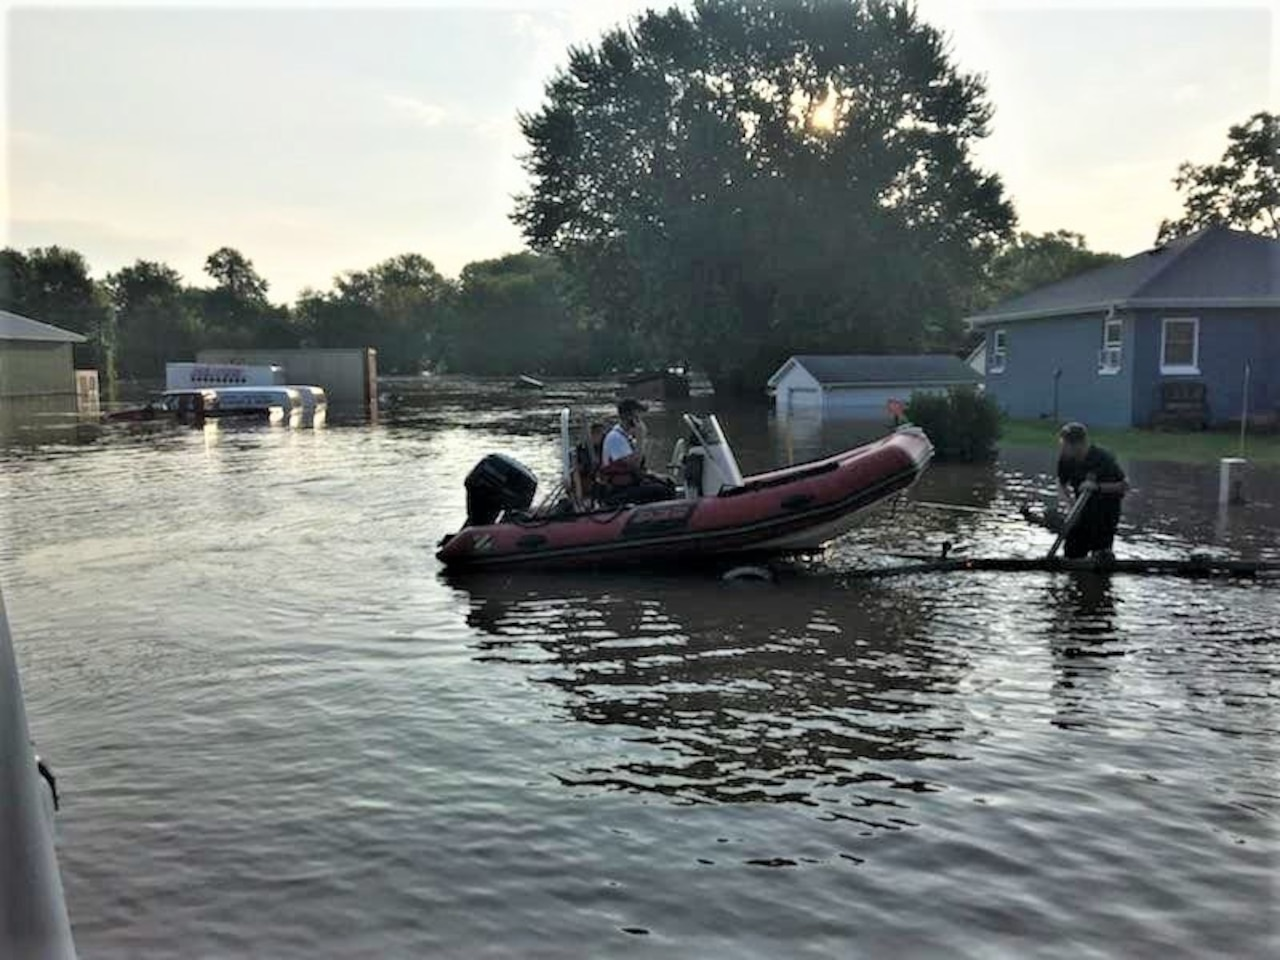 Firefighters prepare to launch a boat for a rescue operation.